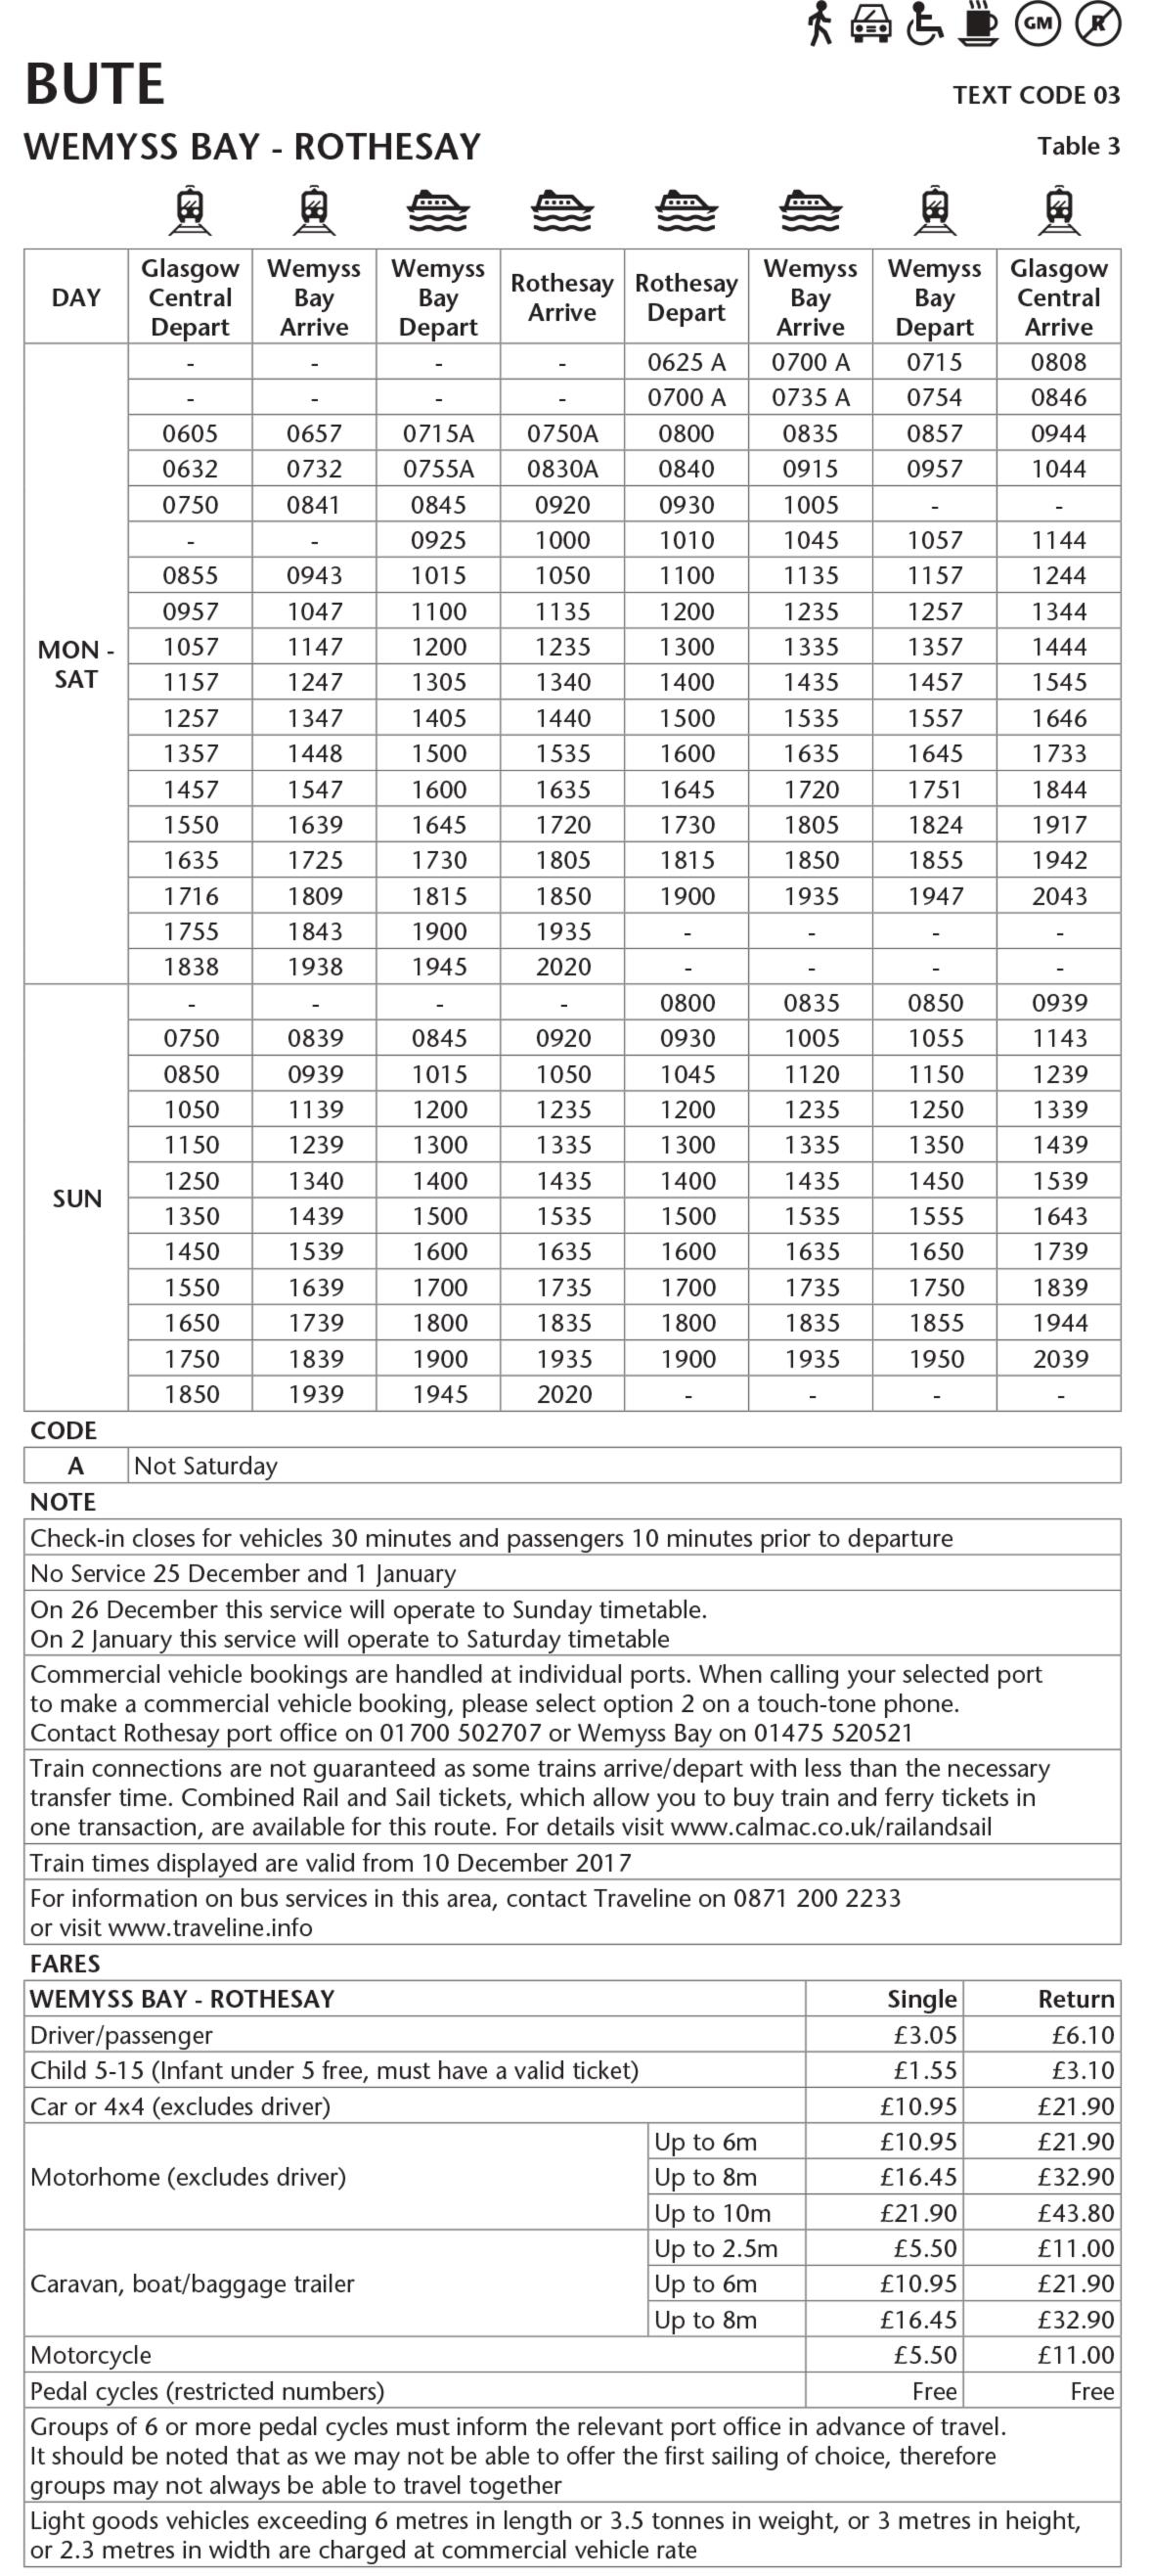 Table 3 Wemyss Bay - Rothesay Winter 2017-18 - This image is currently not accessible to screen readers. Please phone 0800 066 5000 for timetable details.